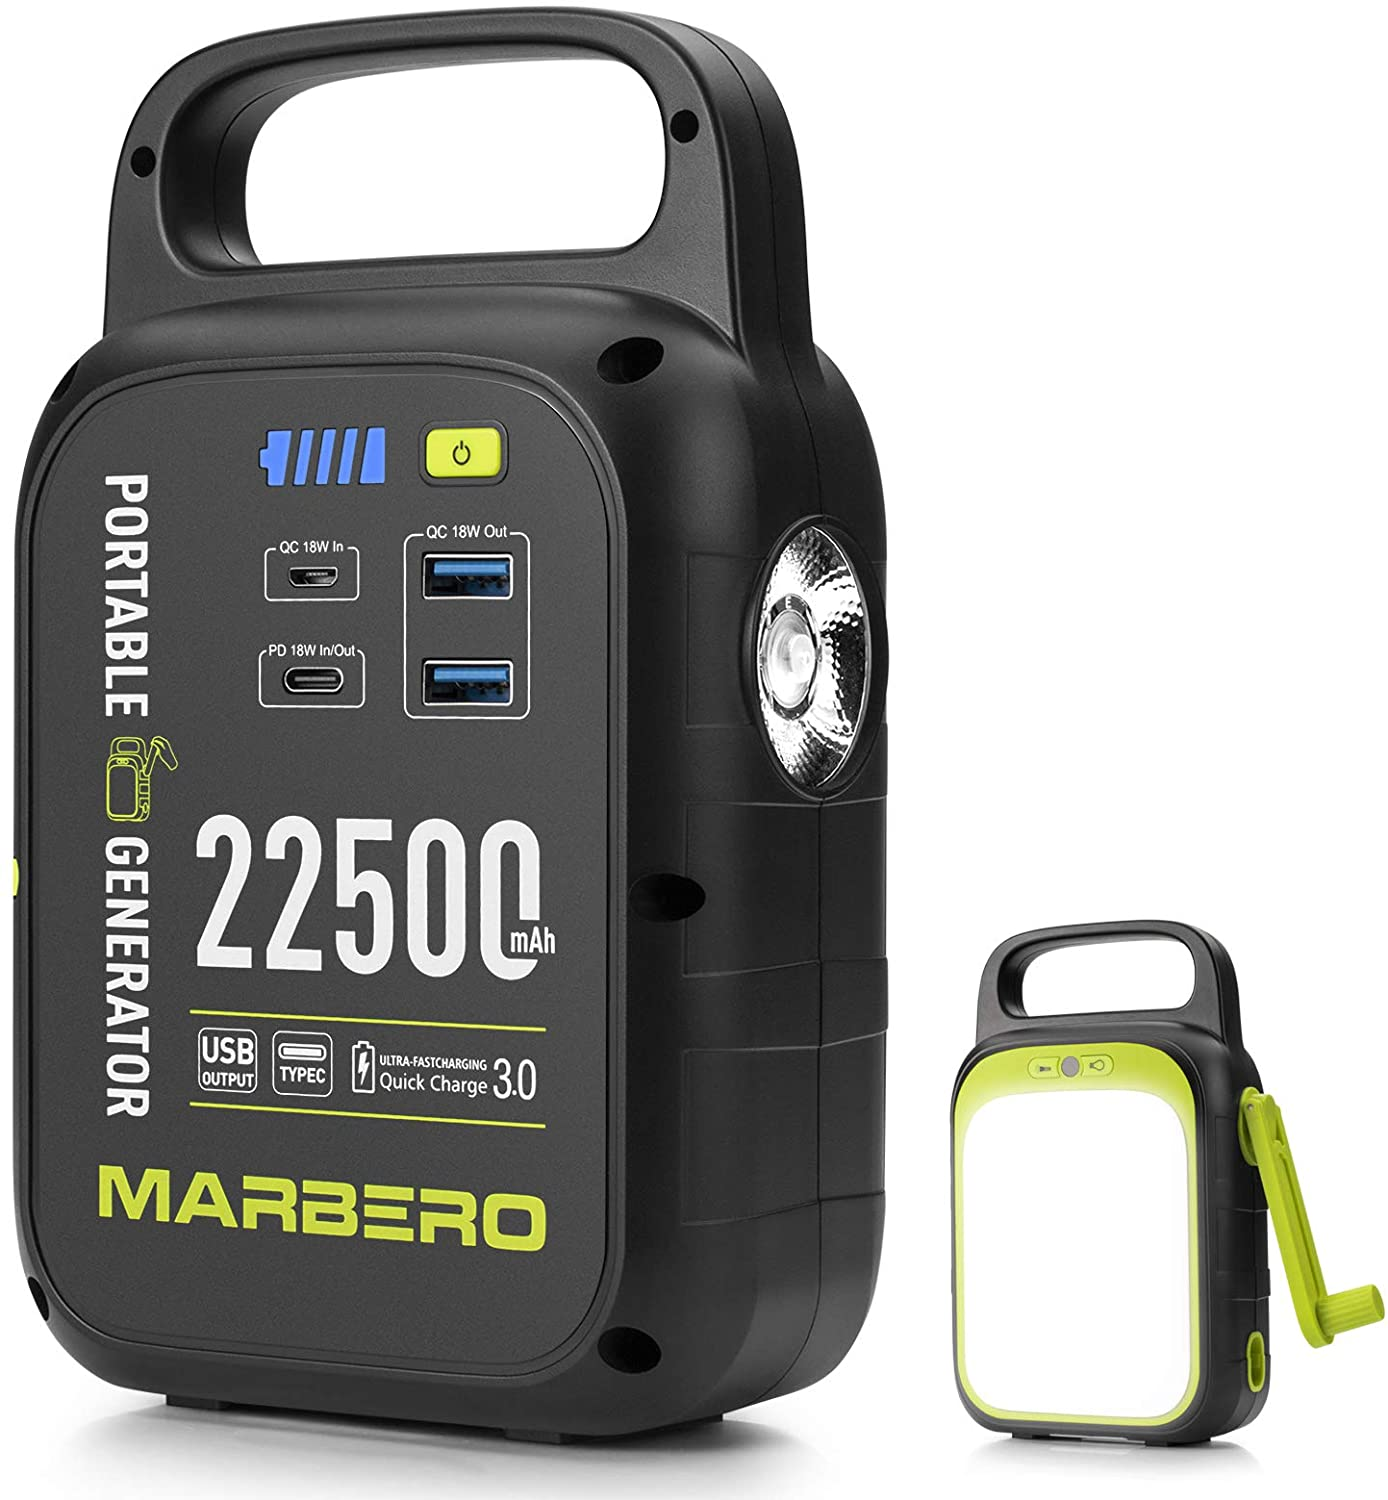 MARBERO 22500mAh Portable Charger with Bright LED Flashlight for Black